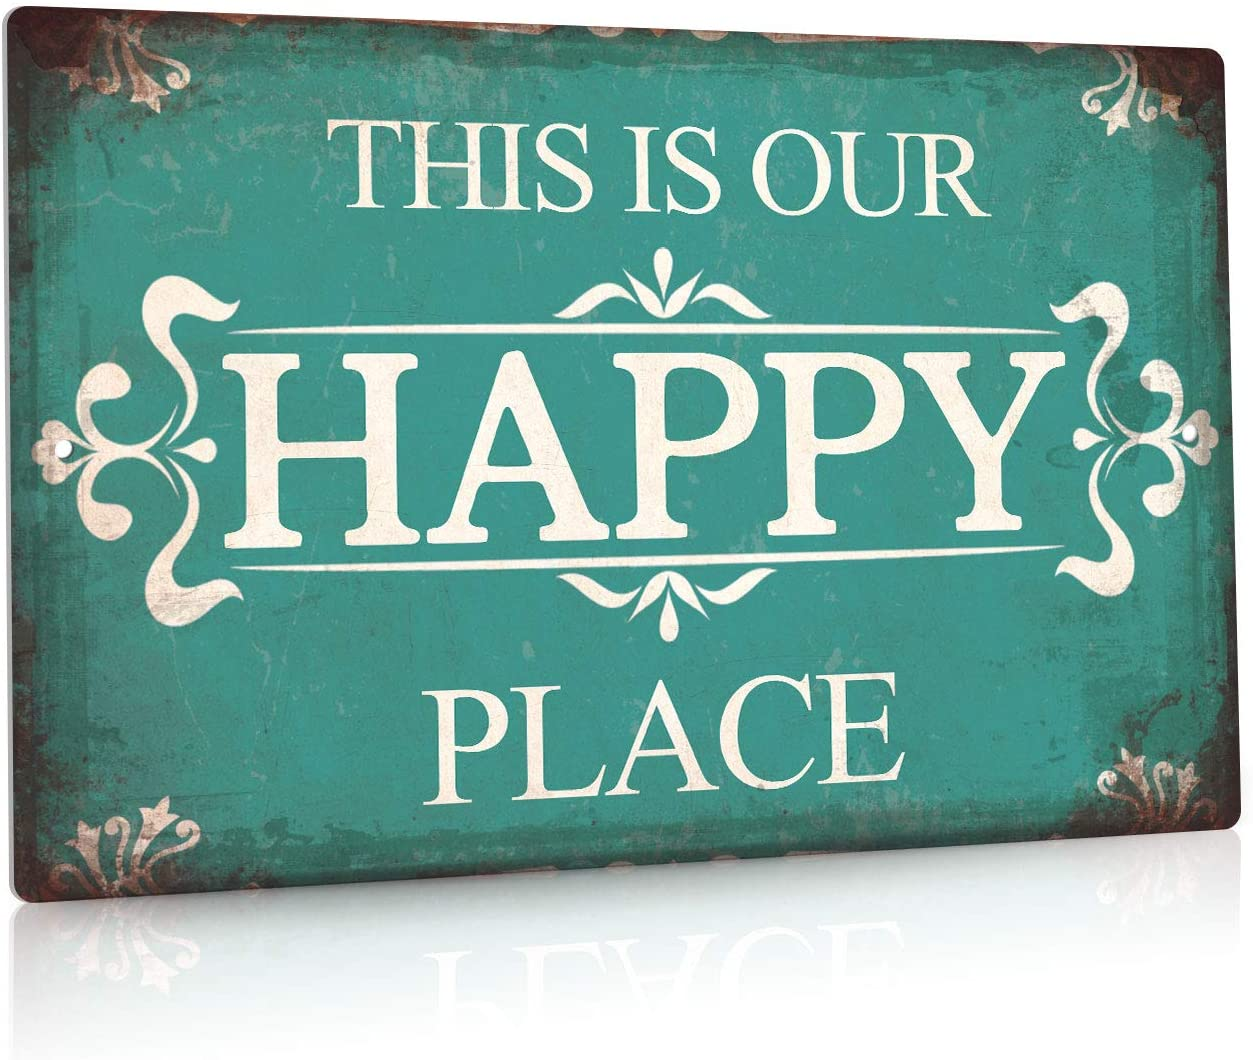 Putuo Decor Porch Sign, Porch Decor for Home, Bar, Farmhouse, 12x8 Inches Aluminum Metal Wall Sign - This is Our Happy Place